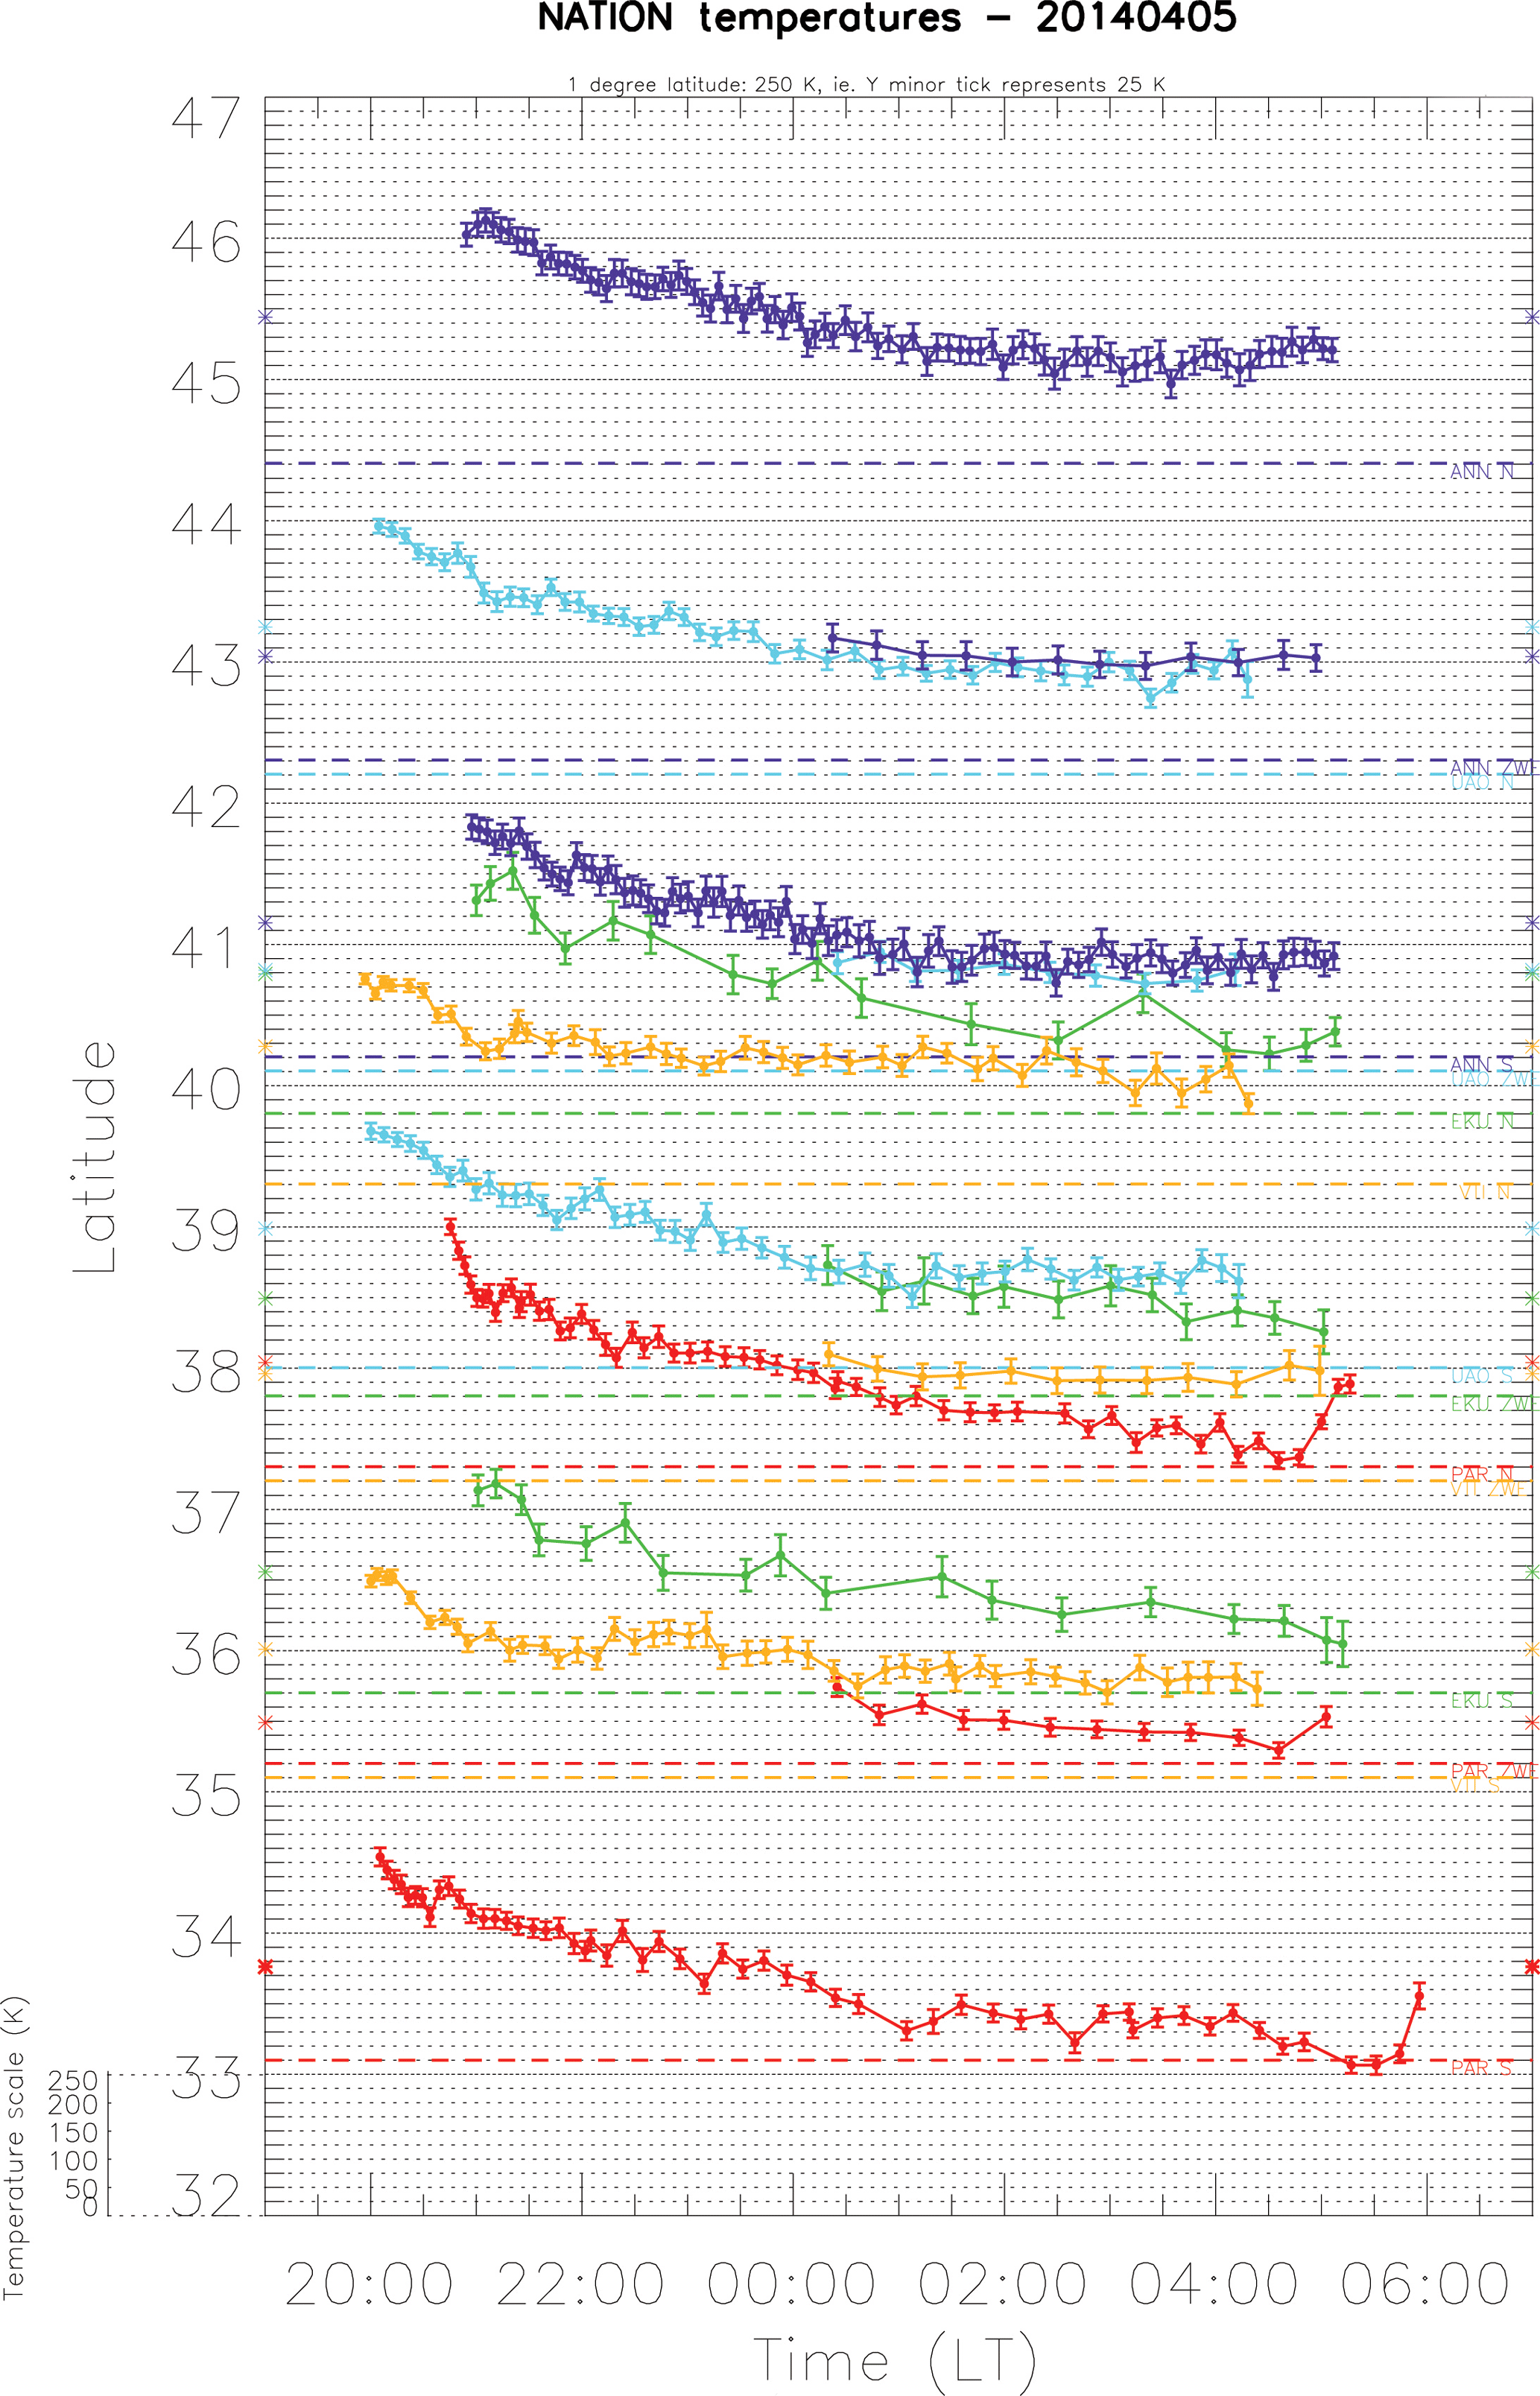 ANGEO - New results on the mid-latitude midnight temperature